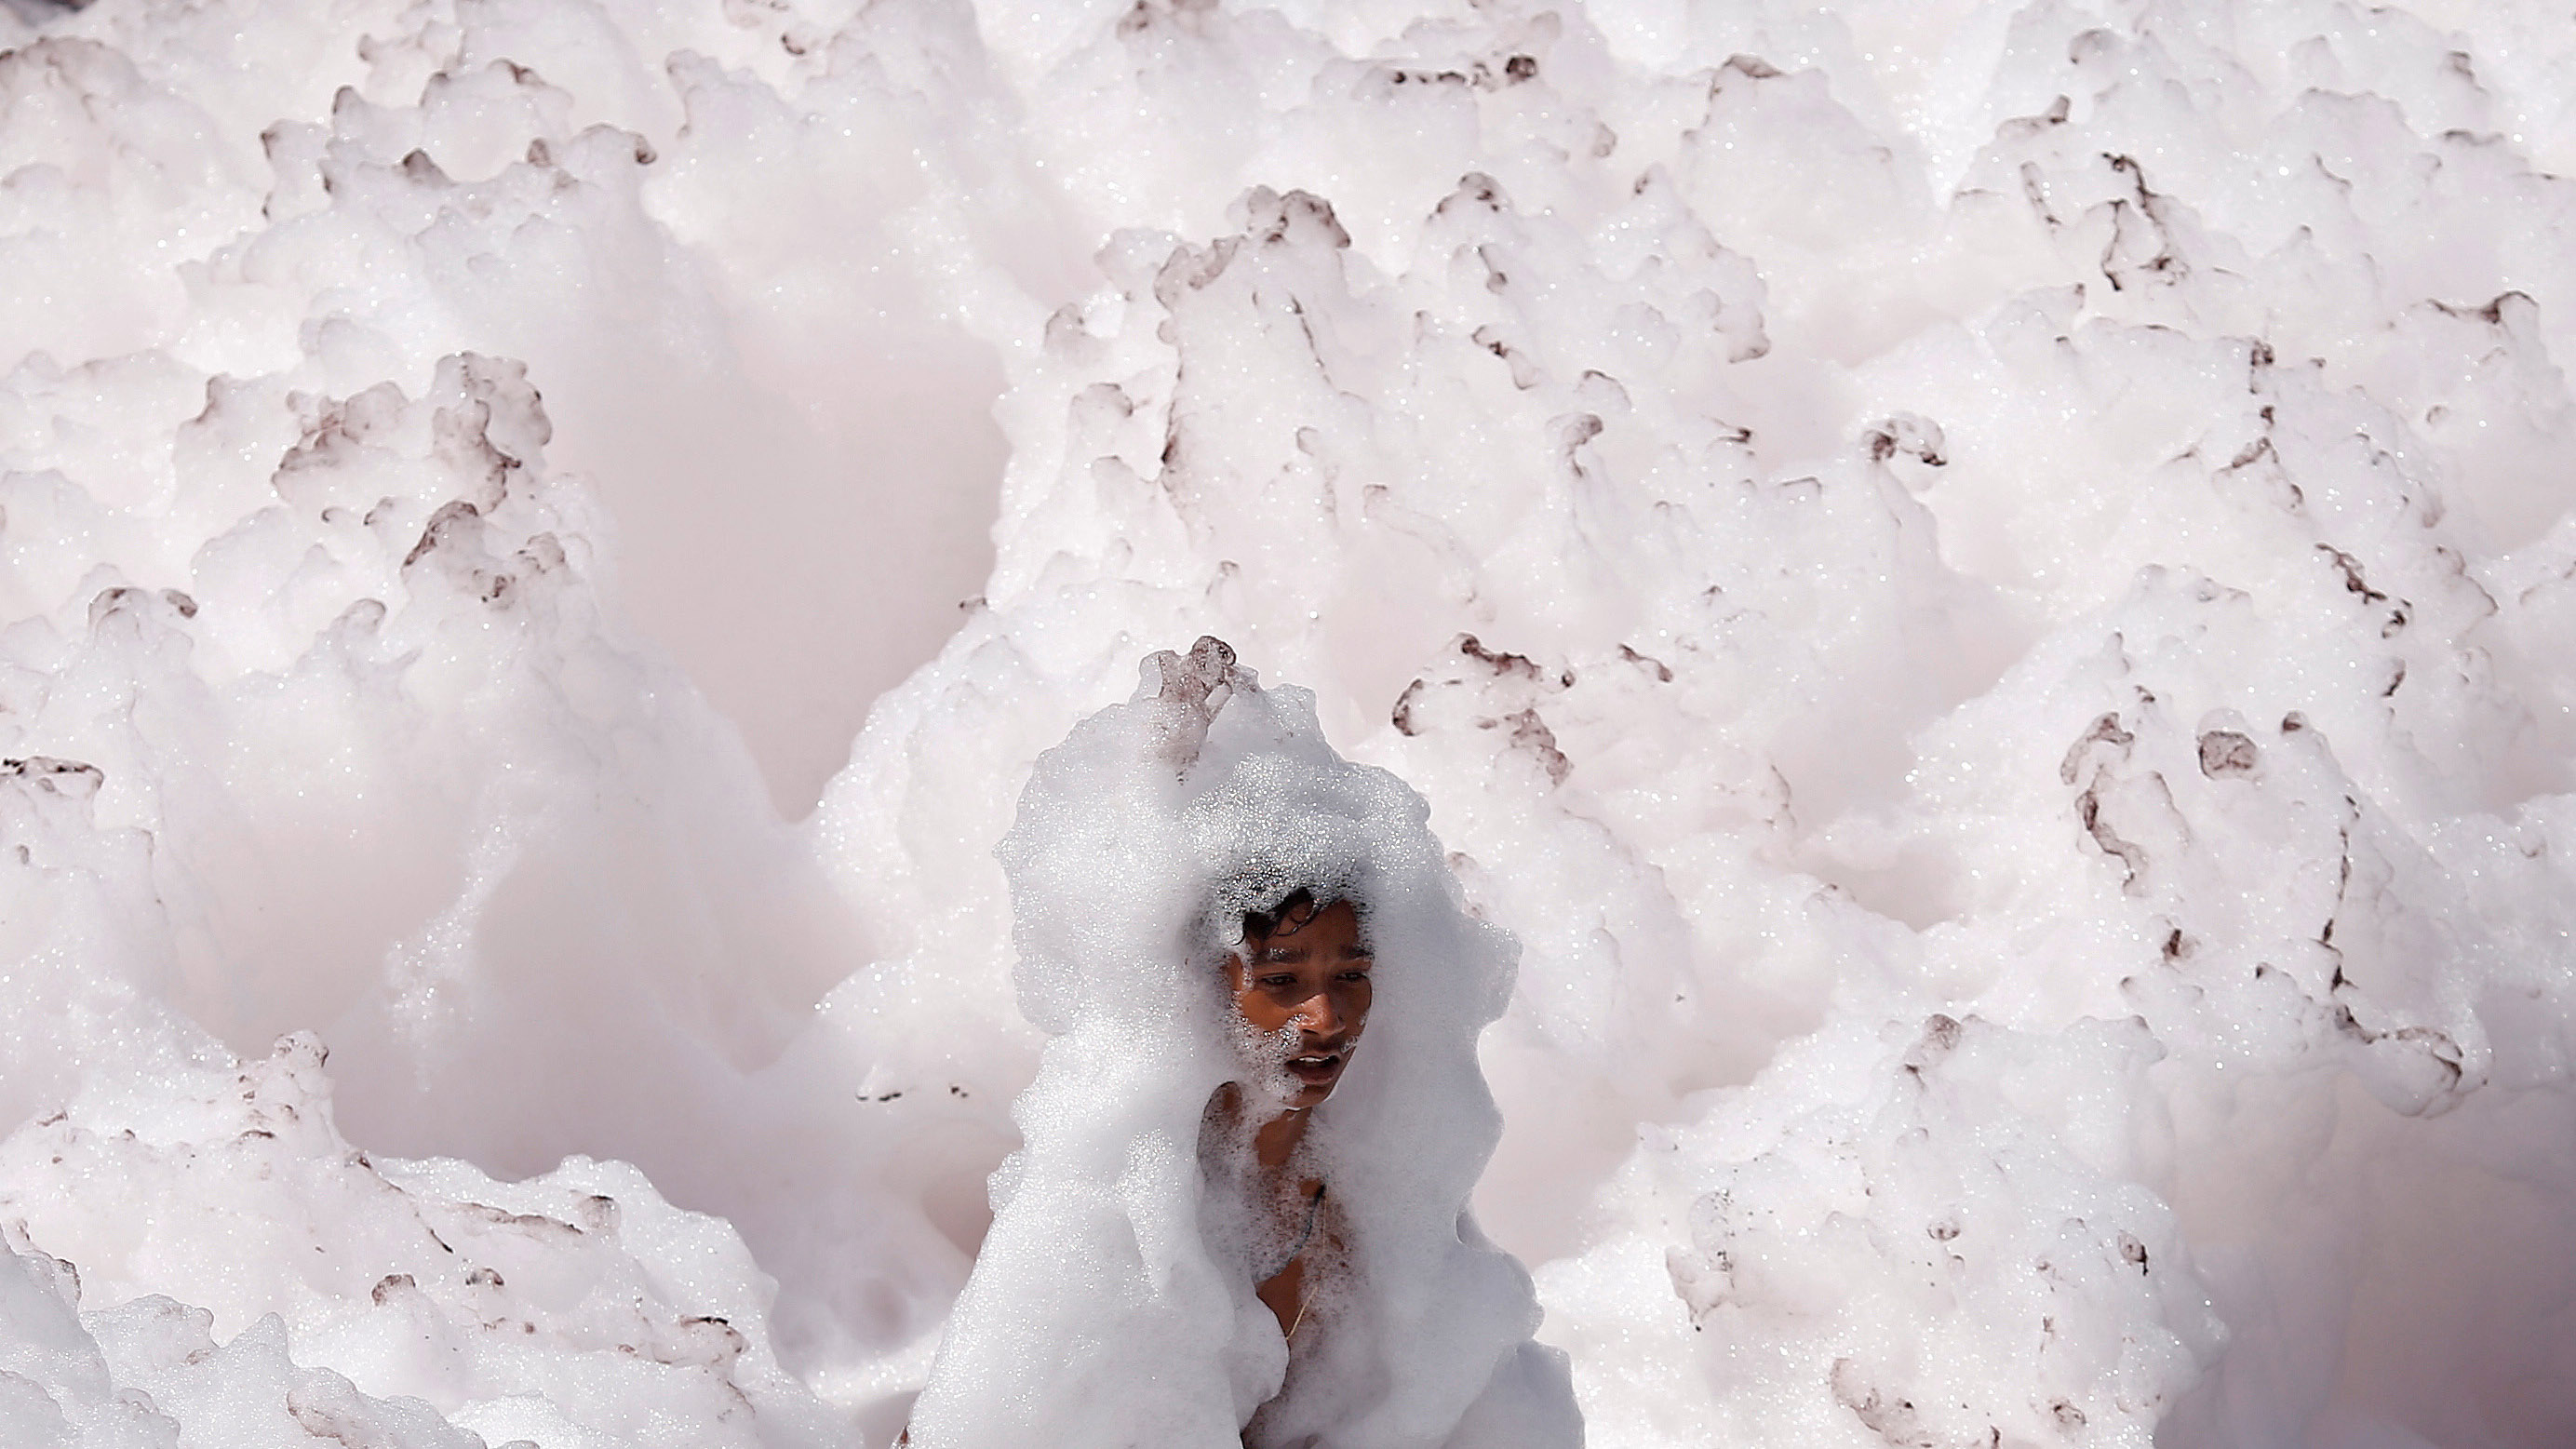 A boy plays in the foam, covering the polluted water of the river Yamuna in New Delhi, India March 25, 2018. REUTERS/Adnan Abidi - RC19E9801E00